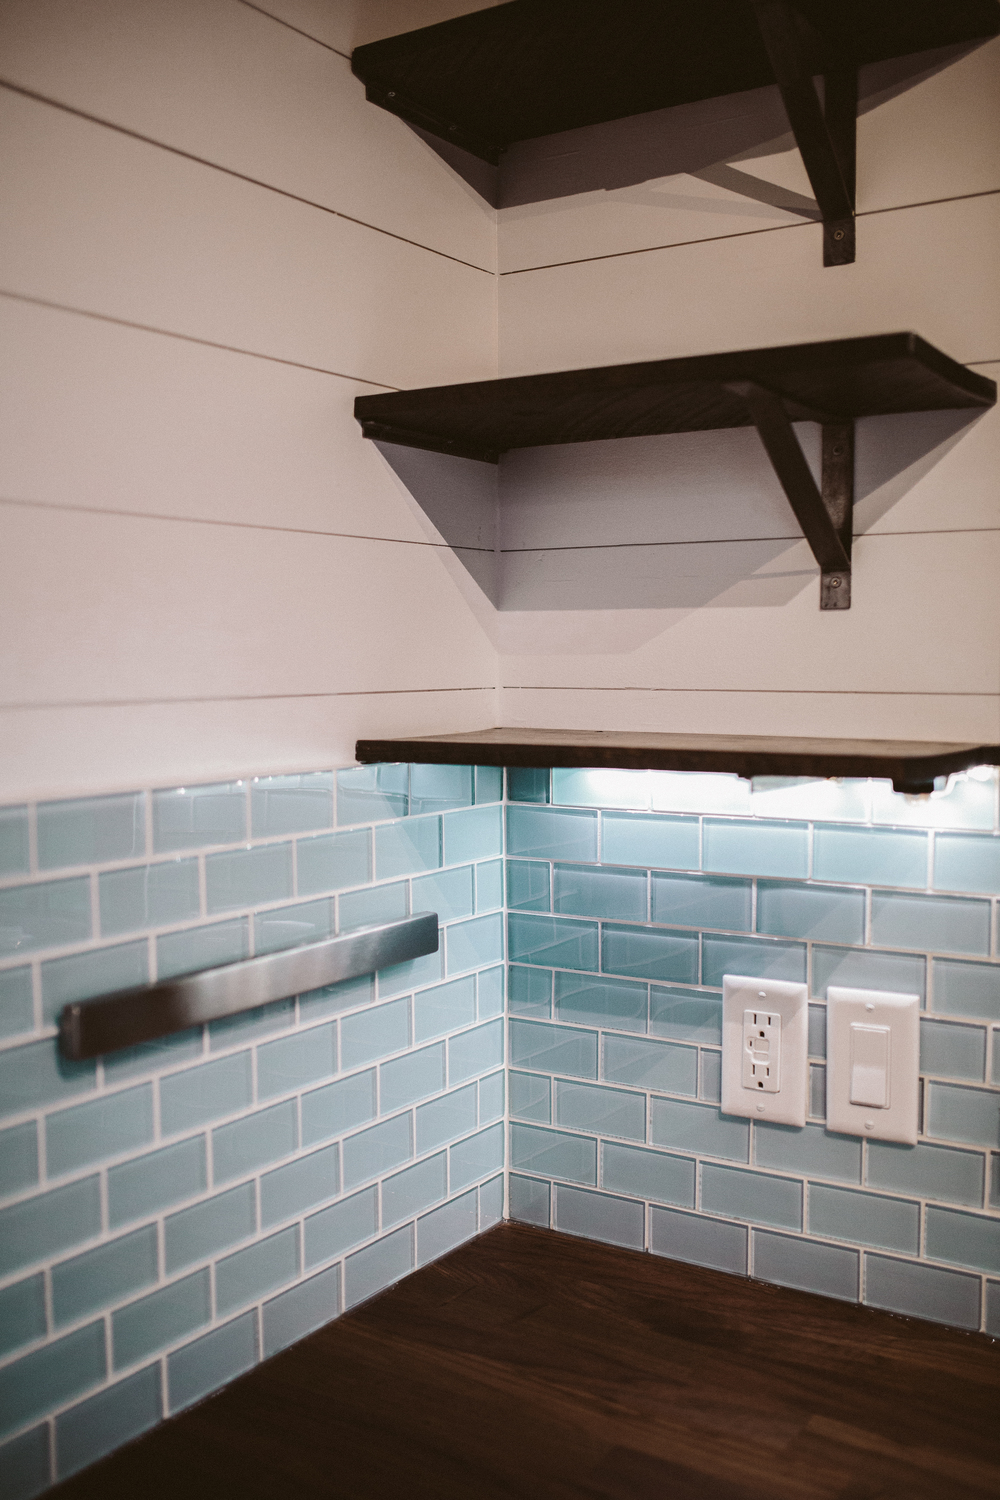 The Mayflower - Butcher block counters, custom welded open shelving, seaglass subway tile, and magnetic knife holder